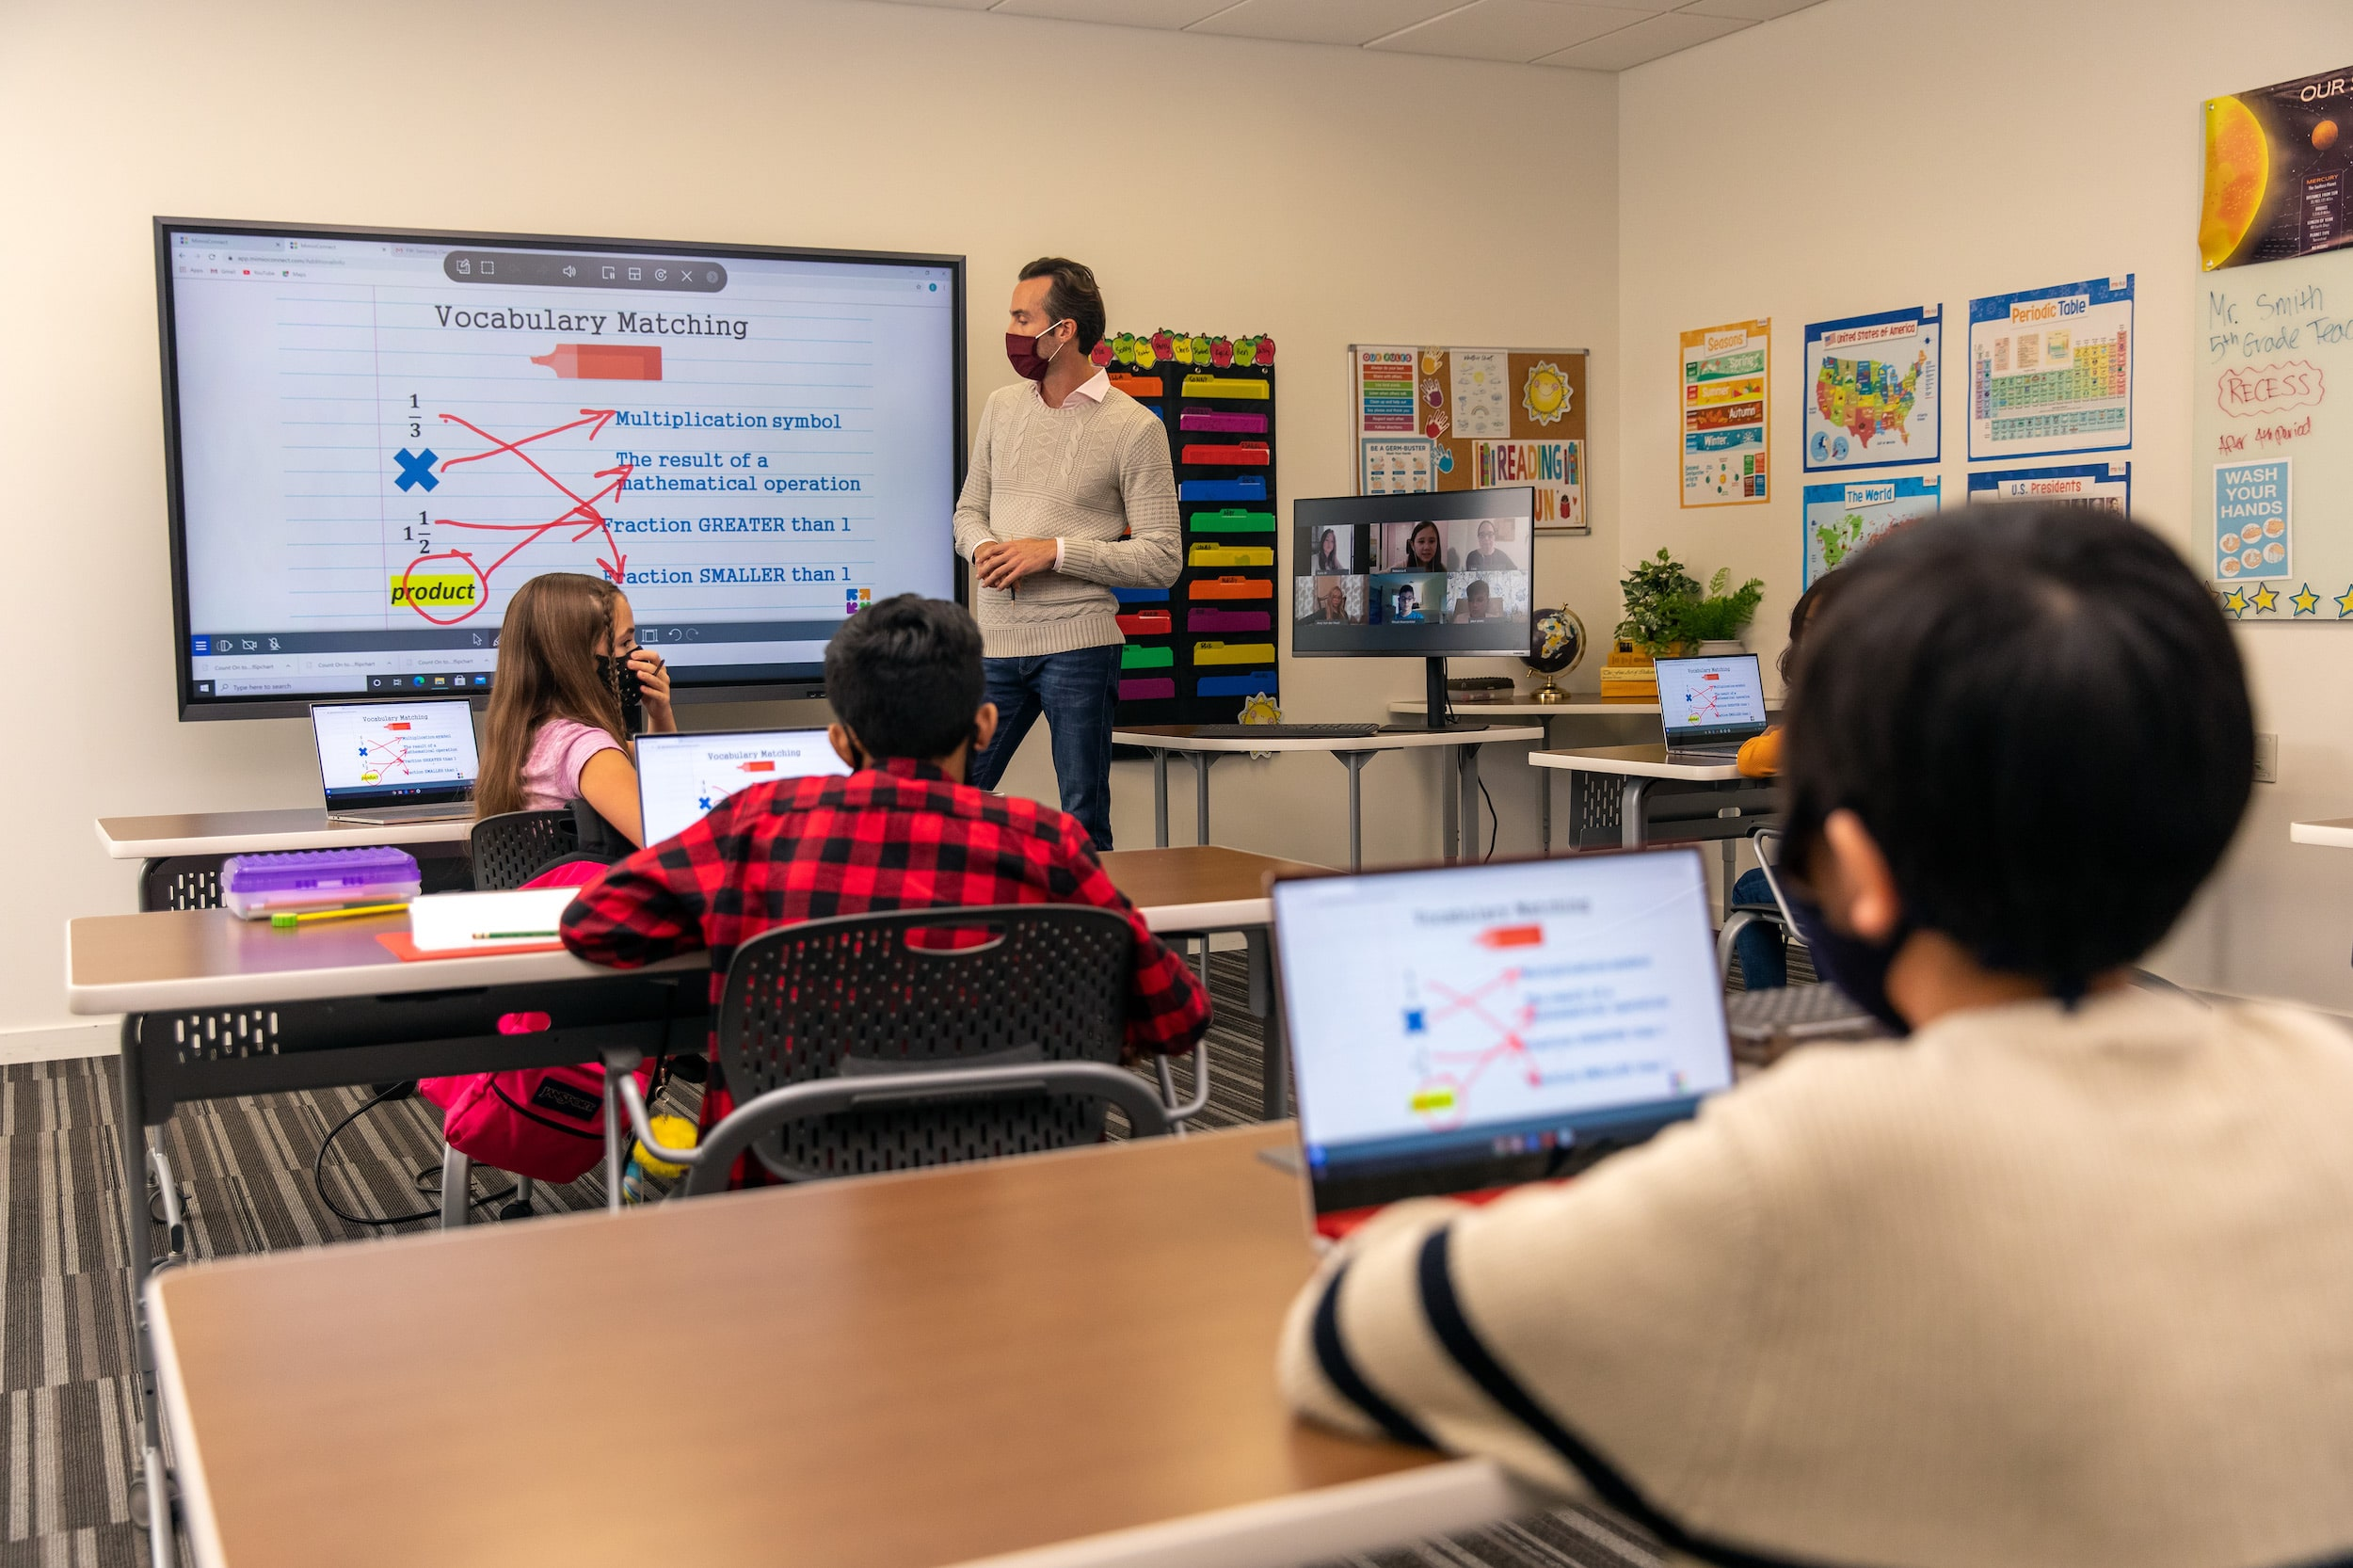 Samsung Interactive Display Flip 75inch for Hybrid Education